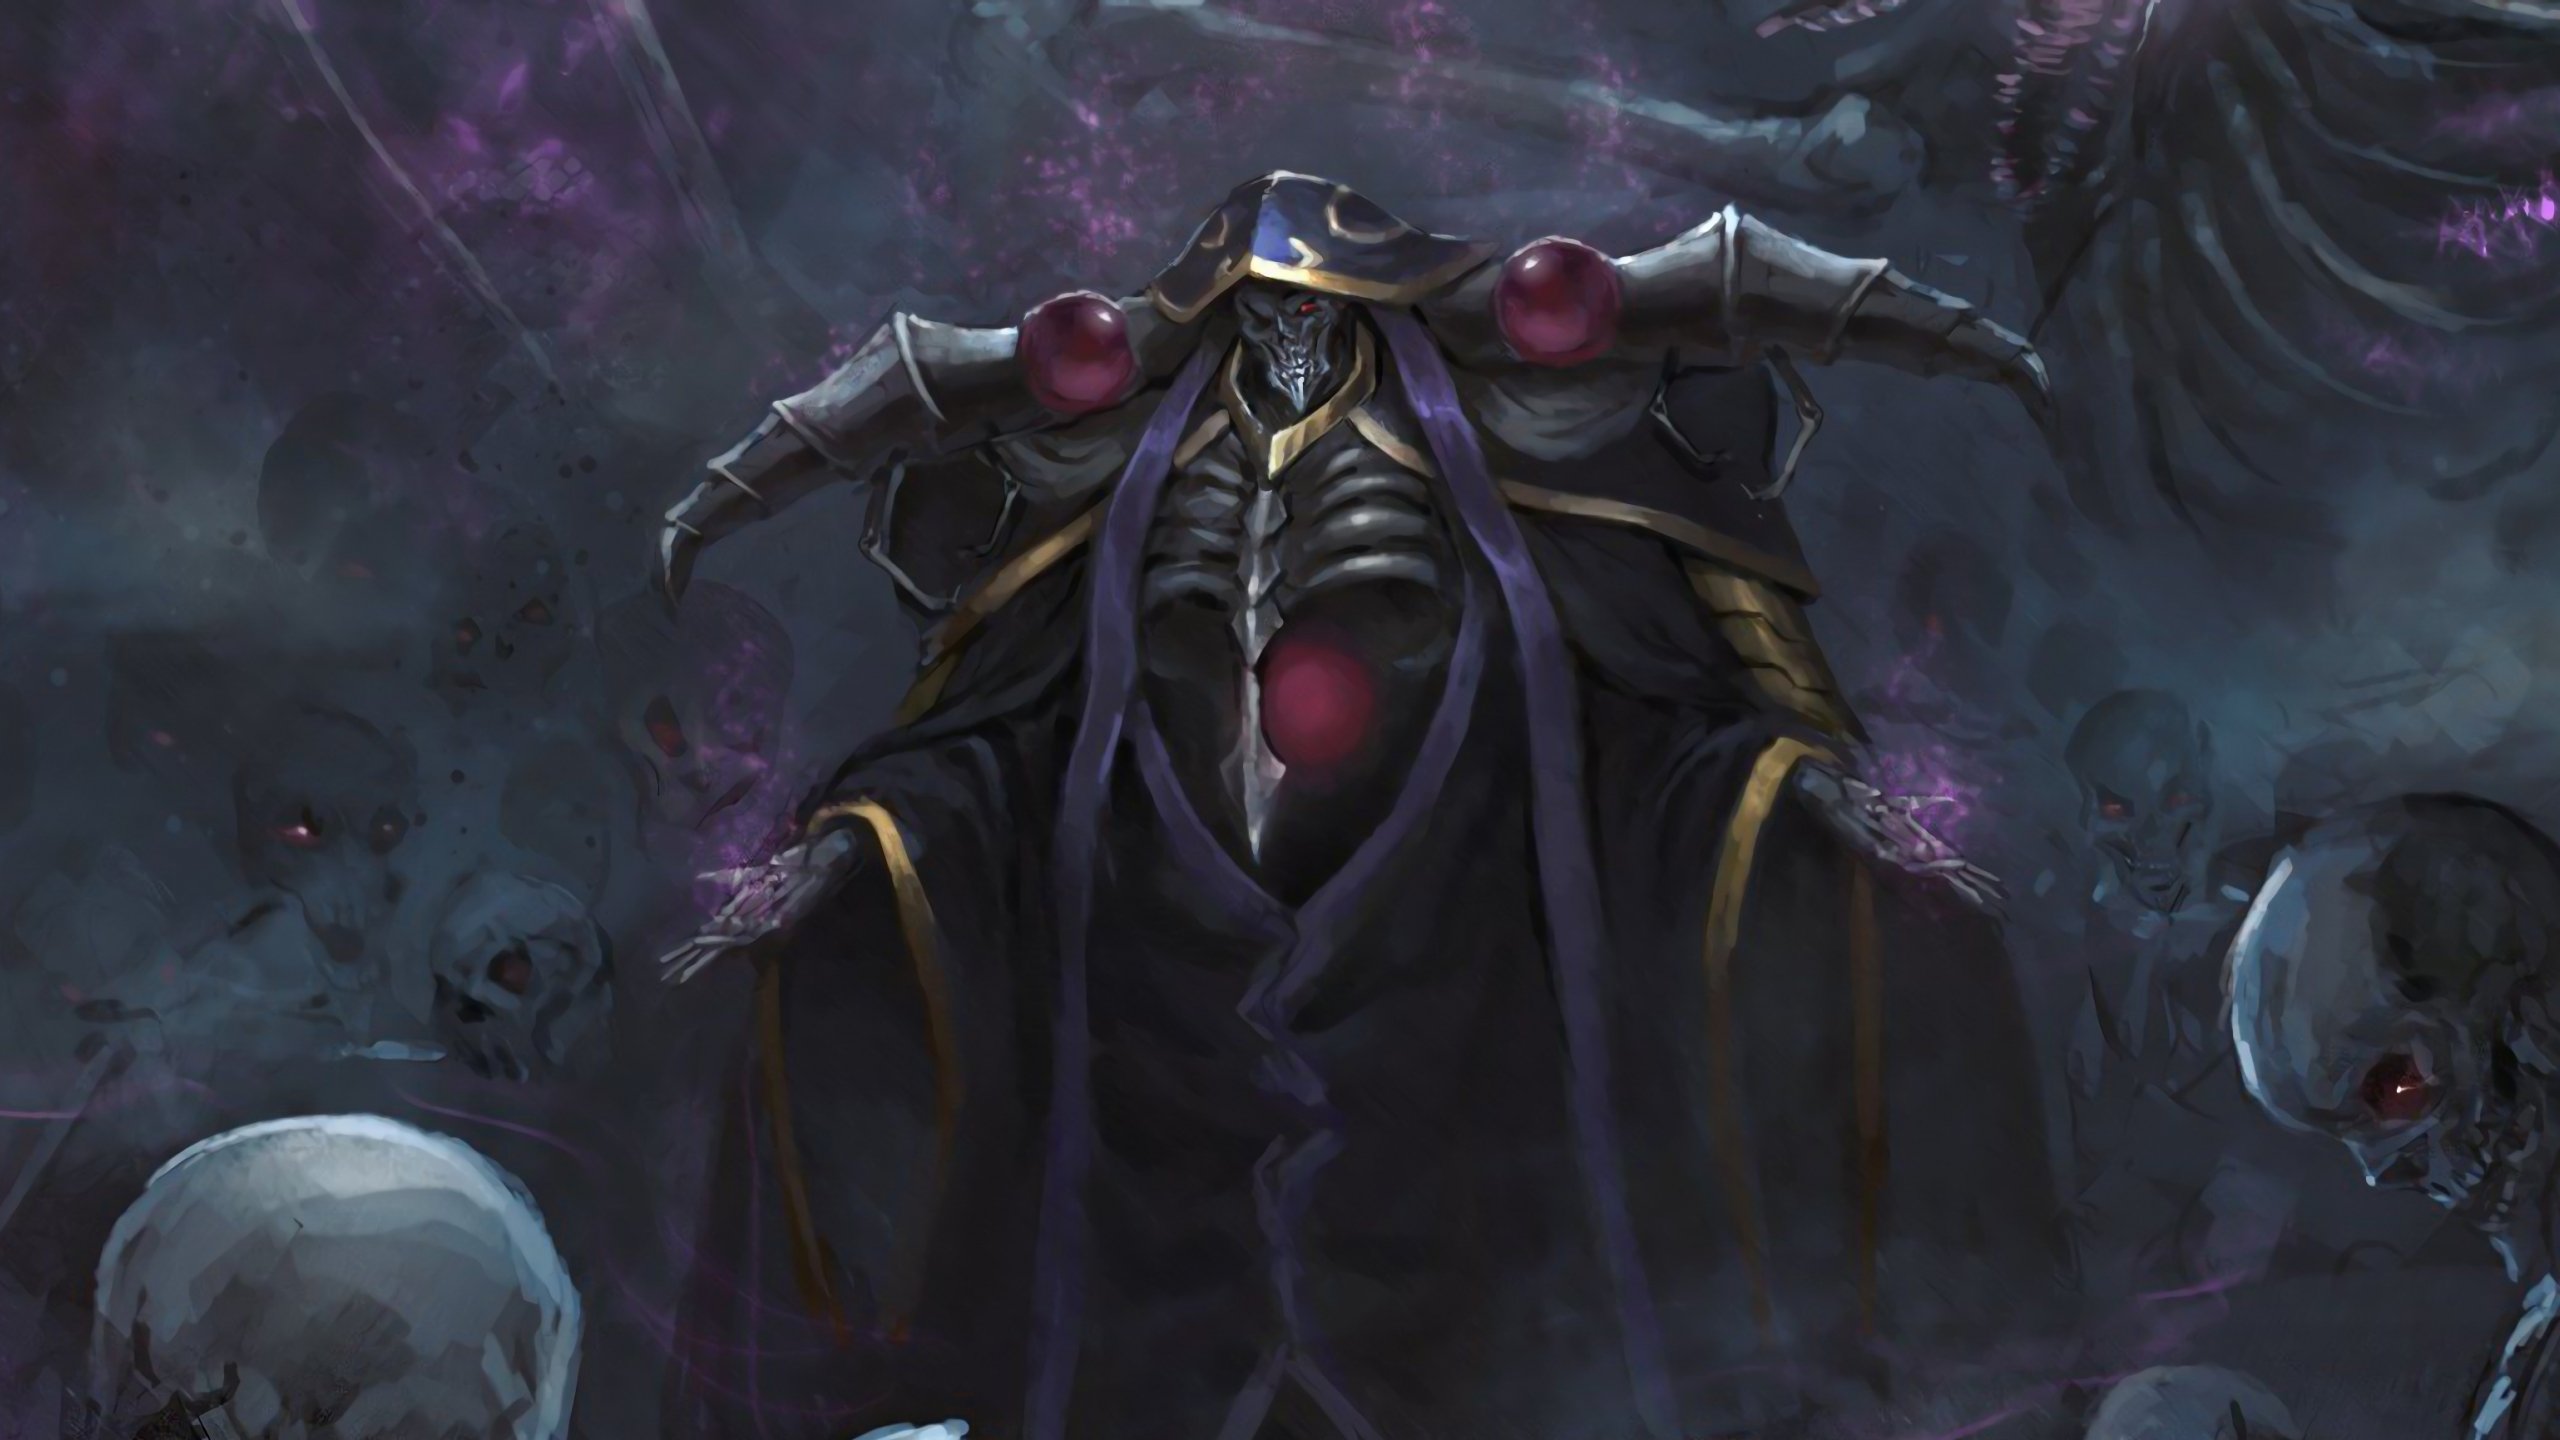 Downaload Overlord King And Warriors Art Wallpaper: Download 2560x1440 Wallpaper King, Overlord, Anime, Art